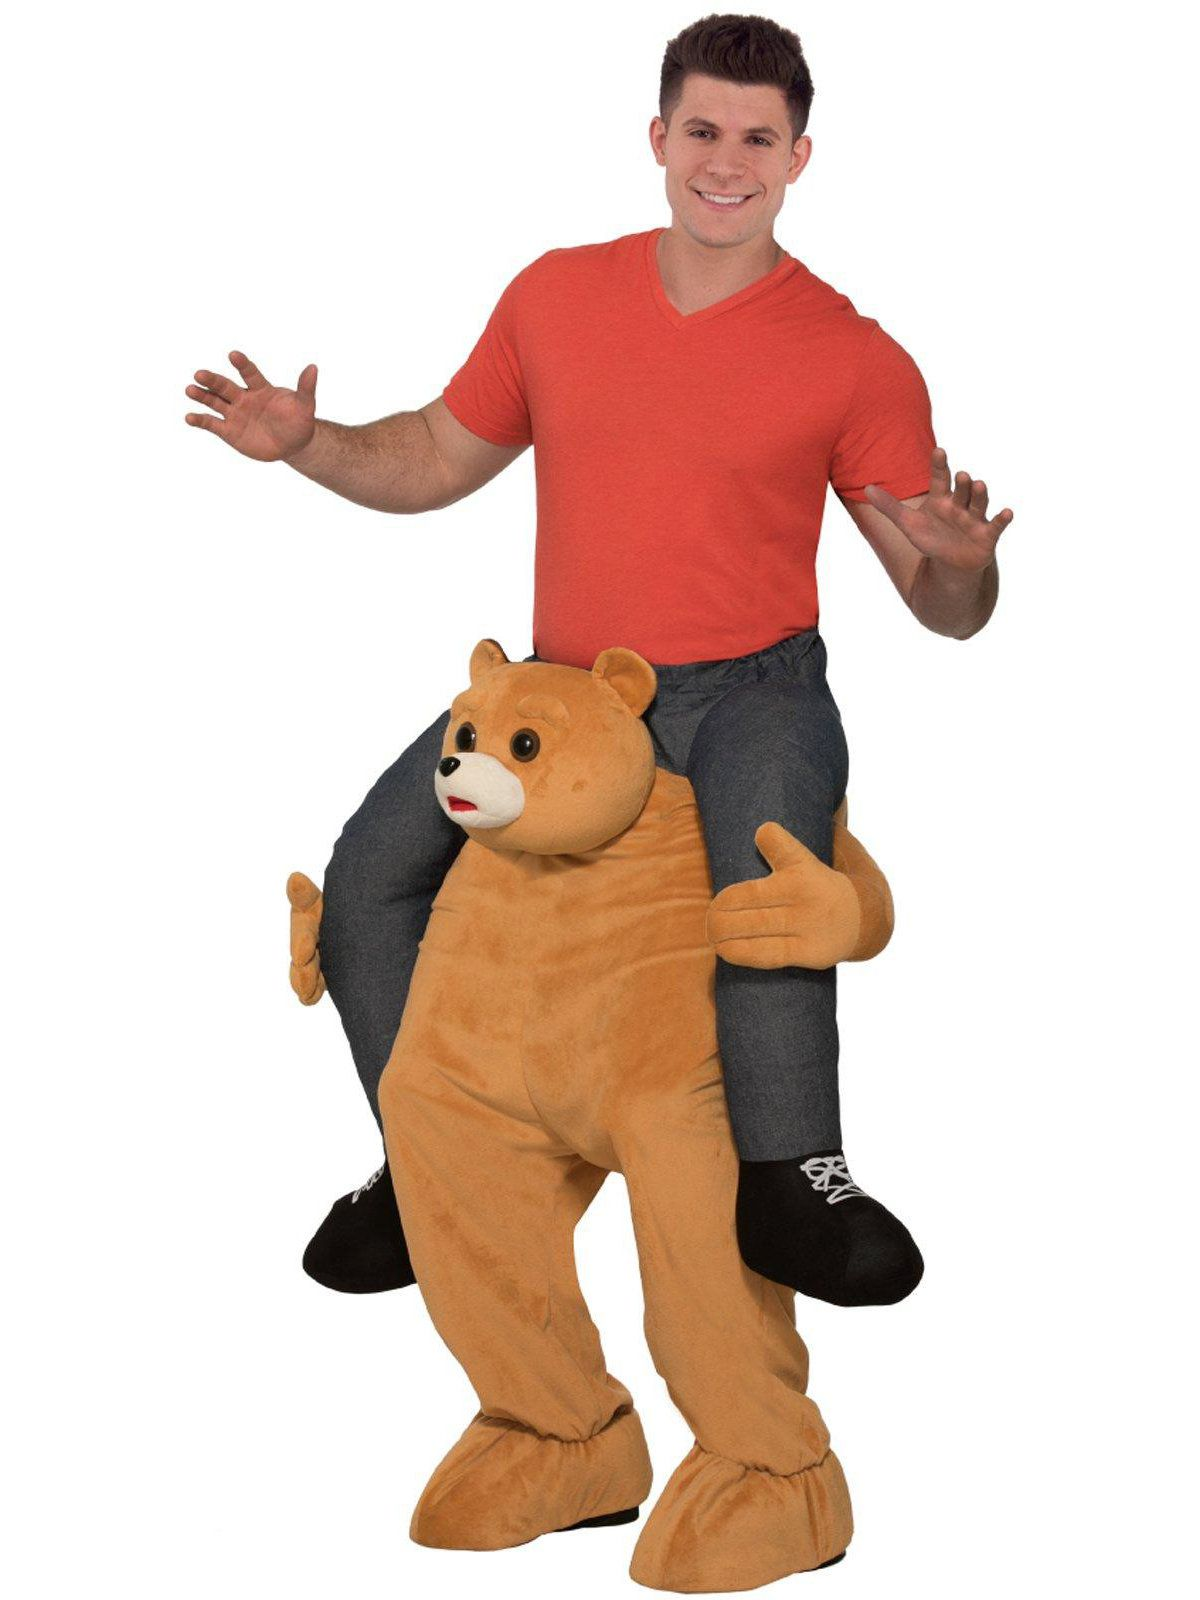 Adult Ride a Bear Costume For Adults  sc 1 st  Wholesale Halloween Costumes & Adult Ride a Bear Costume For Adults | Wholesale Halloween Costumes